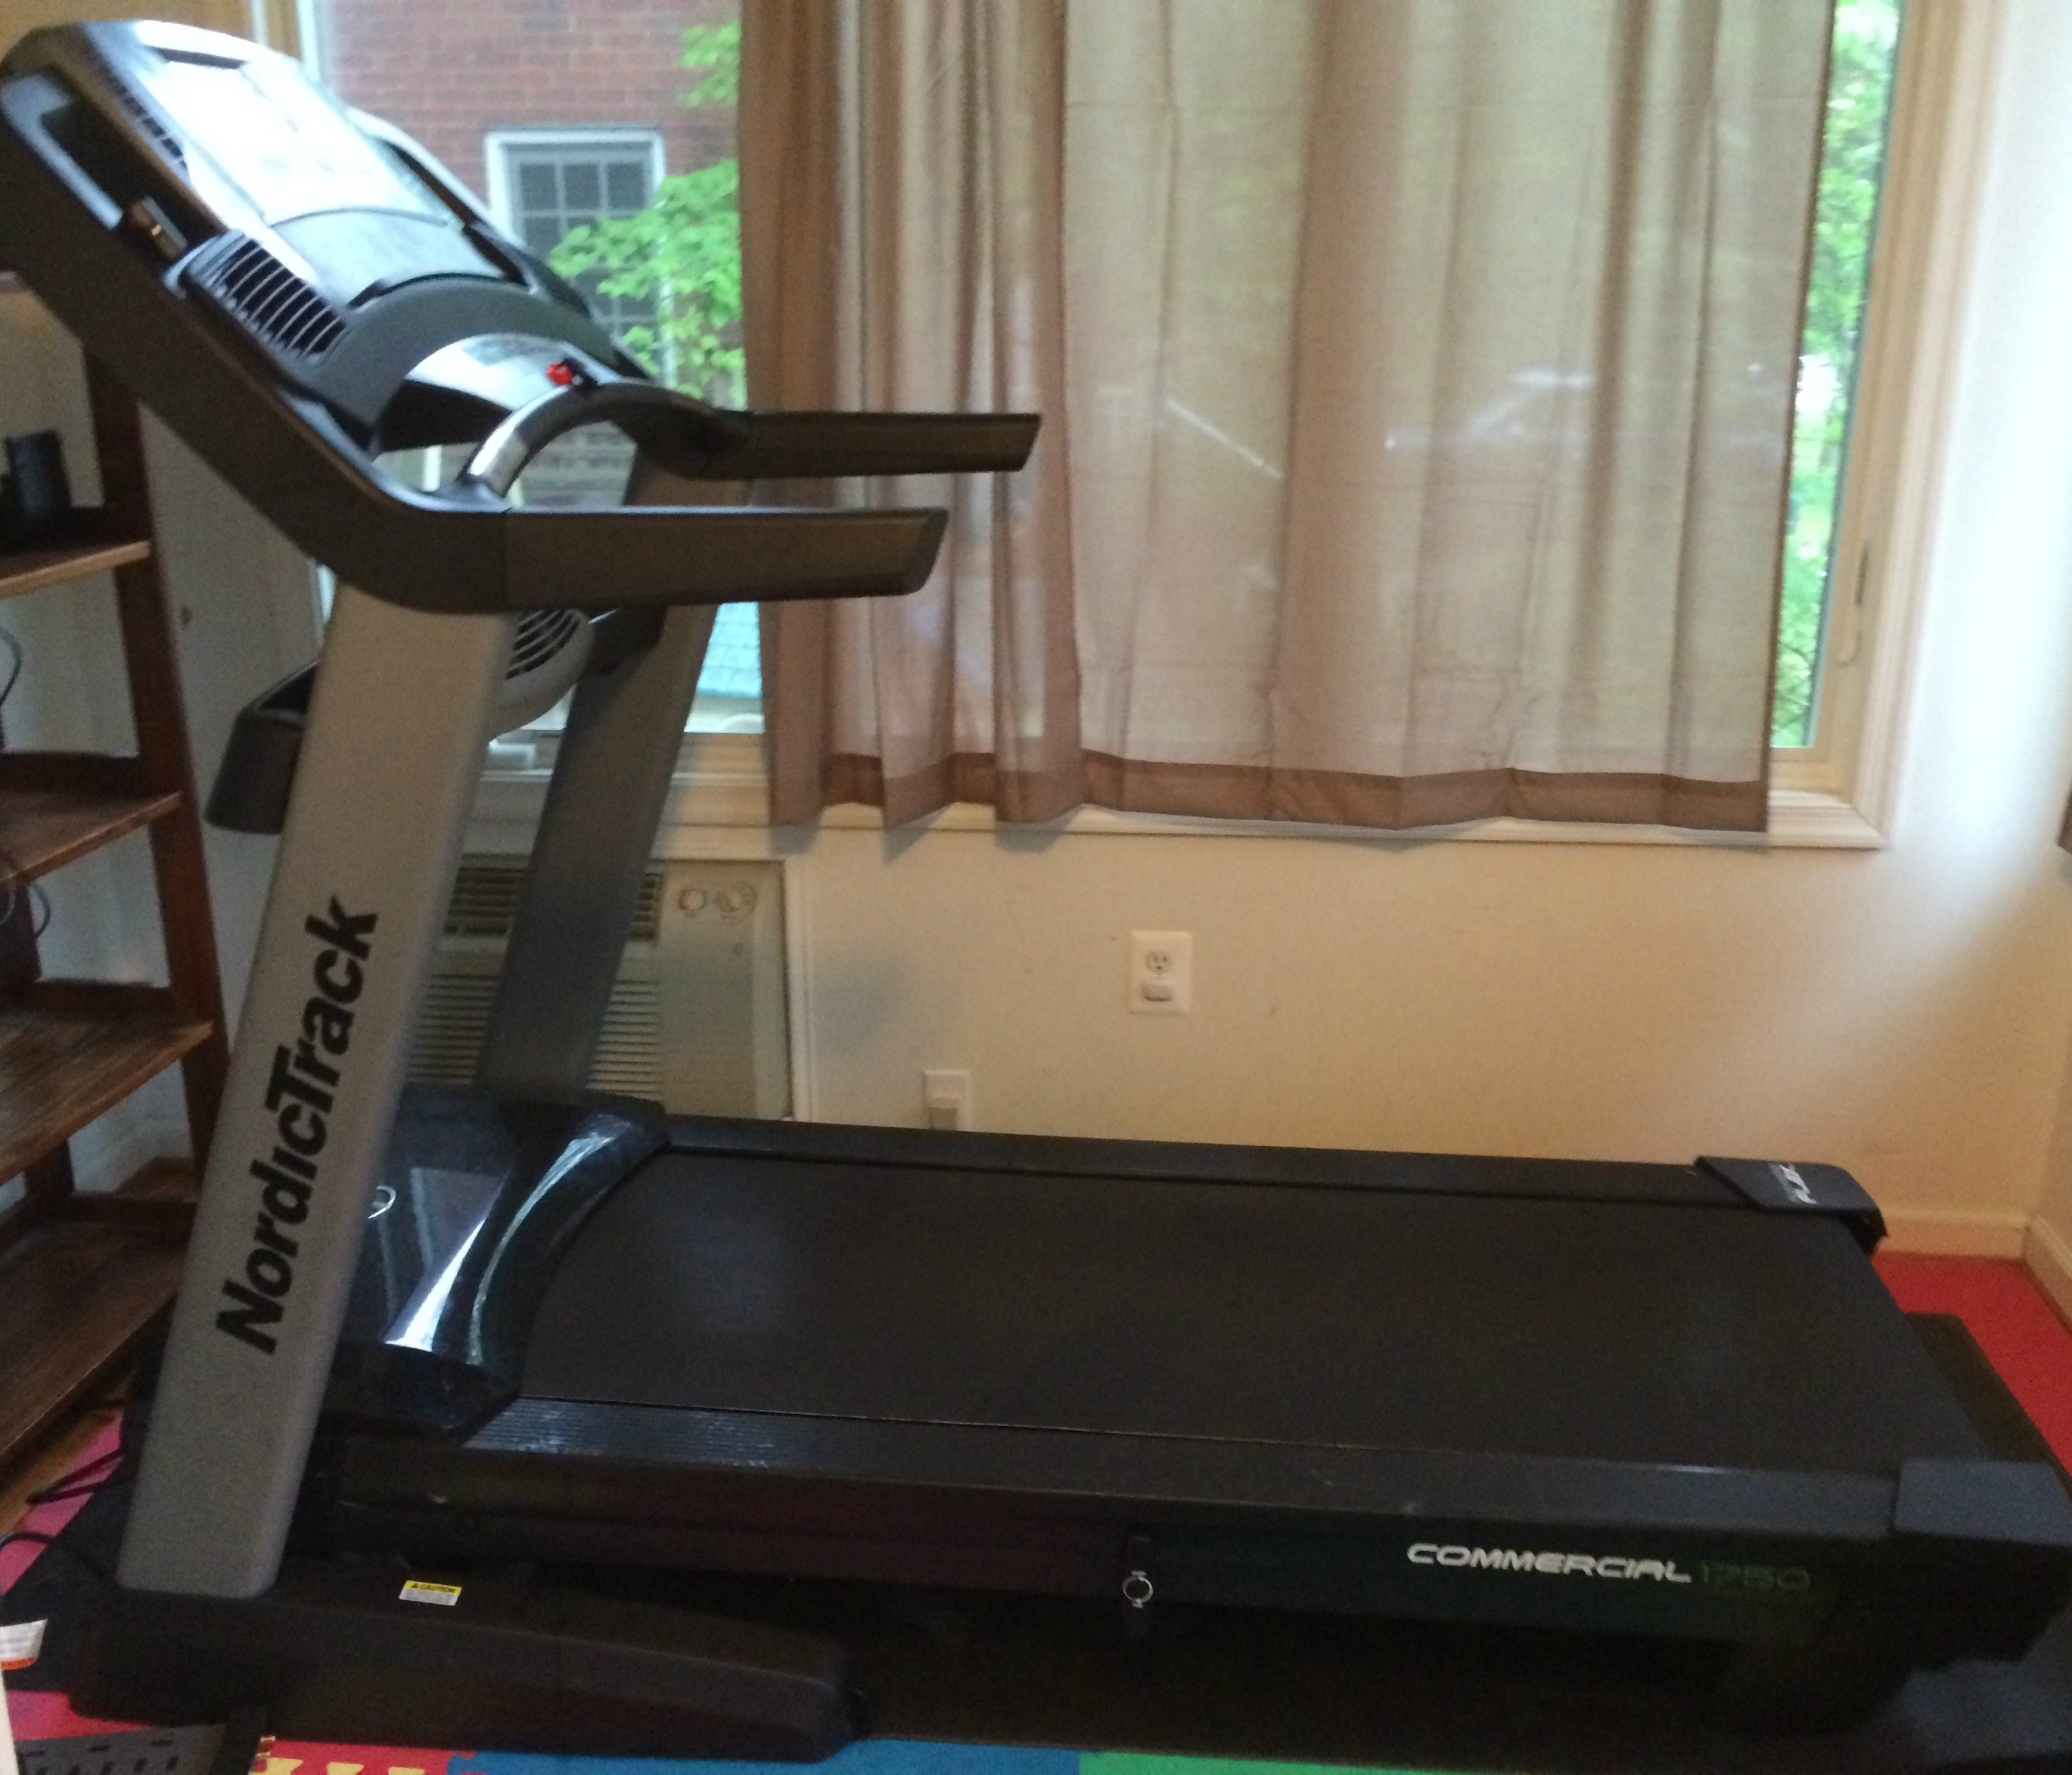 Nordictrack commercial treadmill review